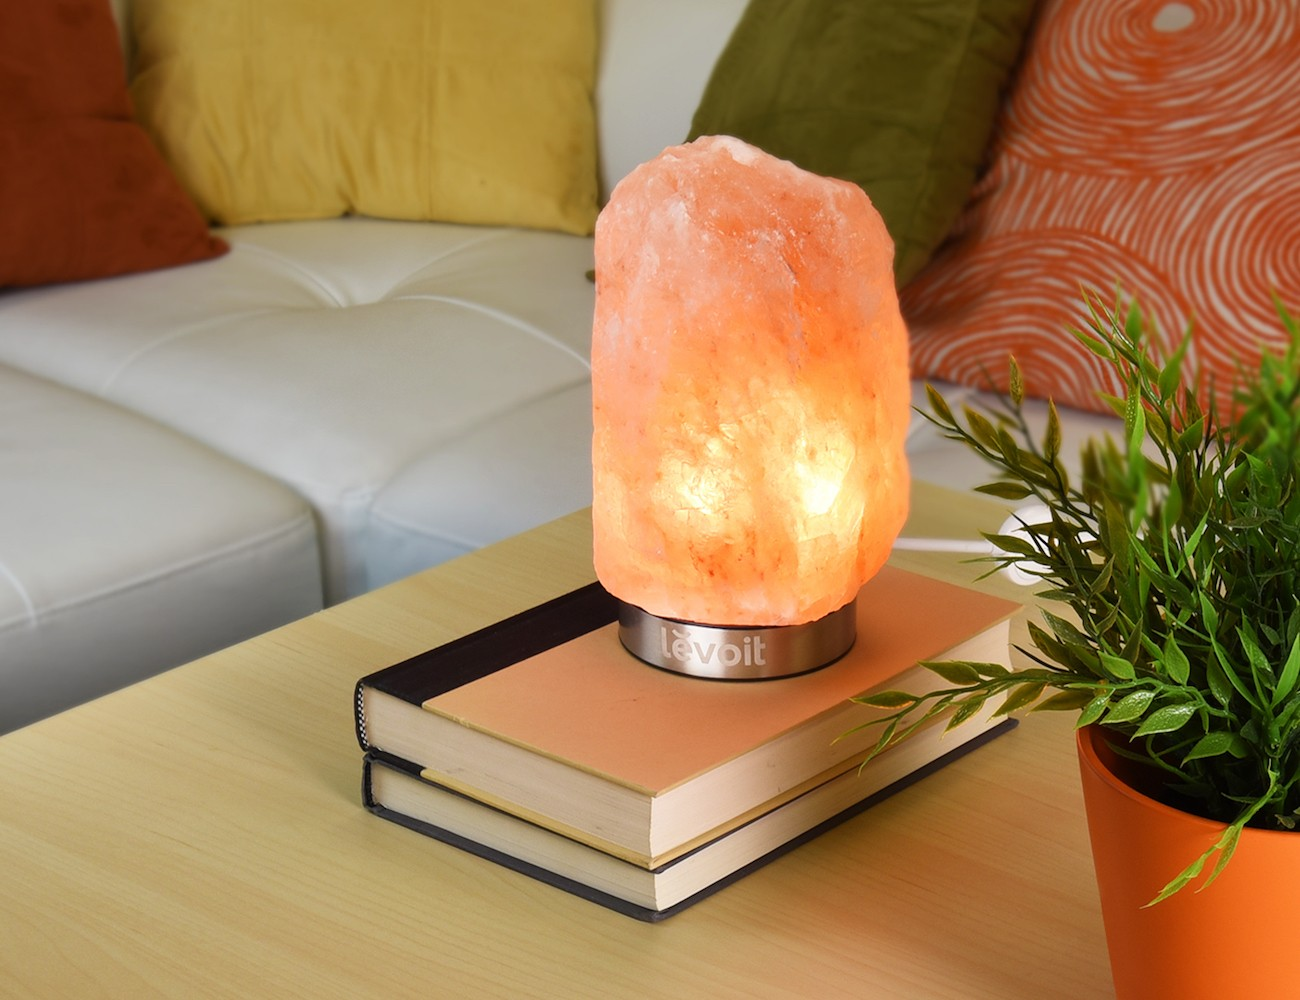 Salt Lamp Keeps Leaking Water : Levoit Elora Himalayan Crystal Salt Lamp Gadget Flow